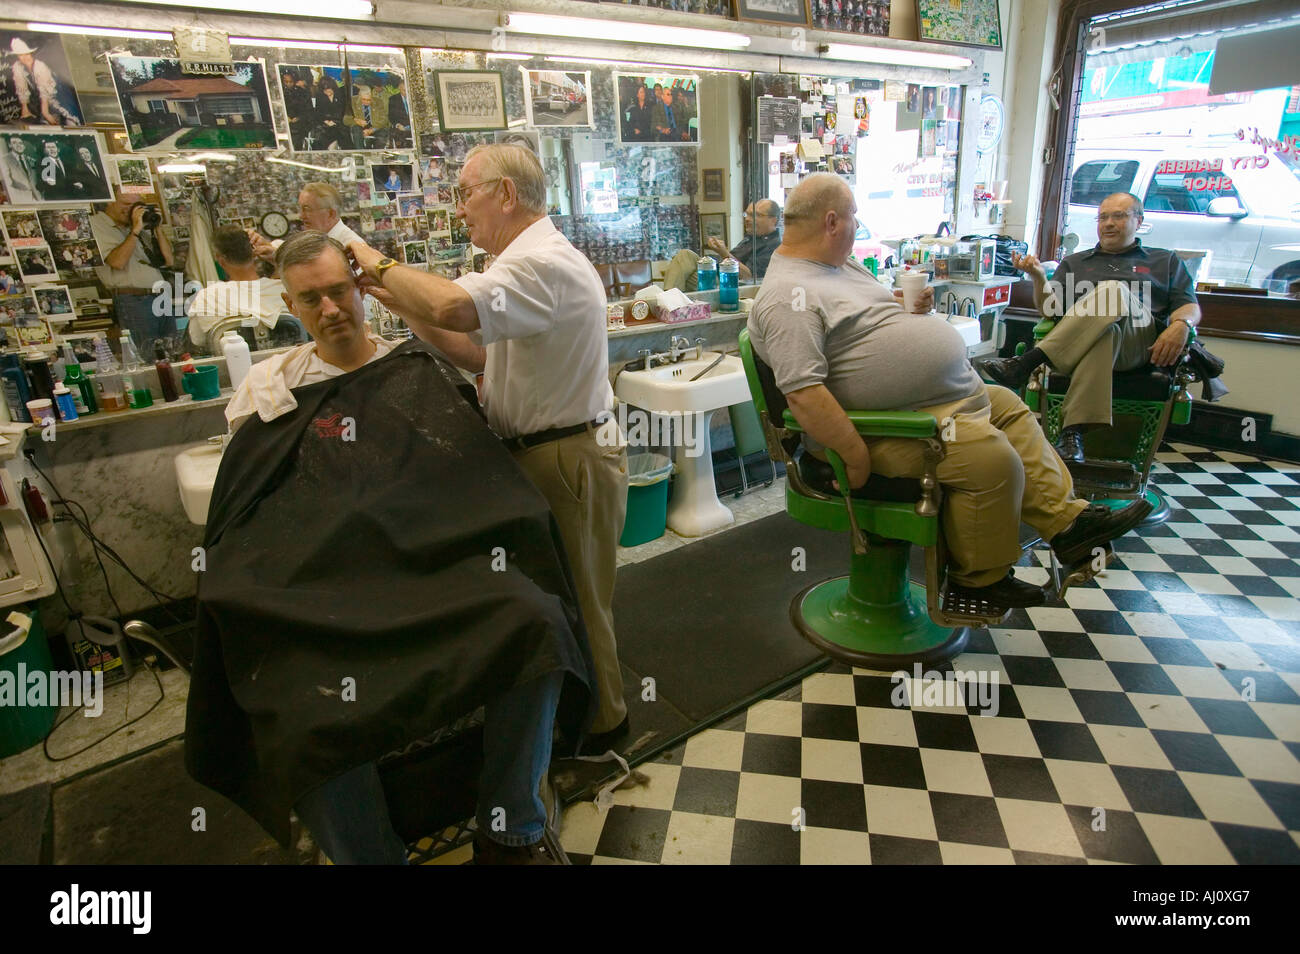 Floyd cutting hair at Floyd s City Barber Shop in Mount Airy North Carolina the town featured in Mayberry RFD and home of Andy - Stock Image